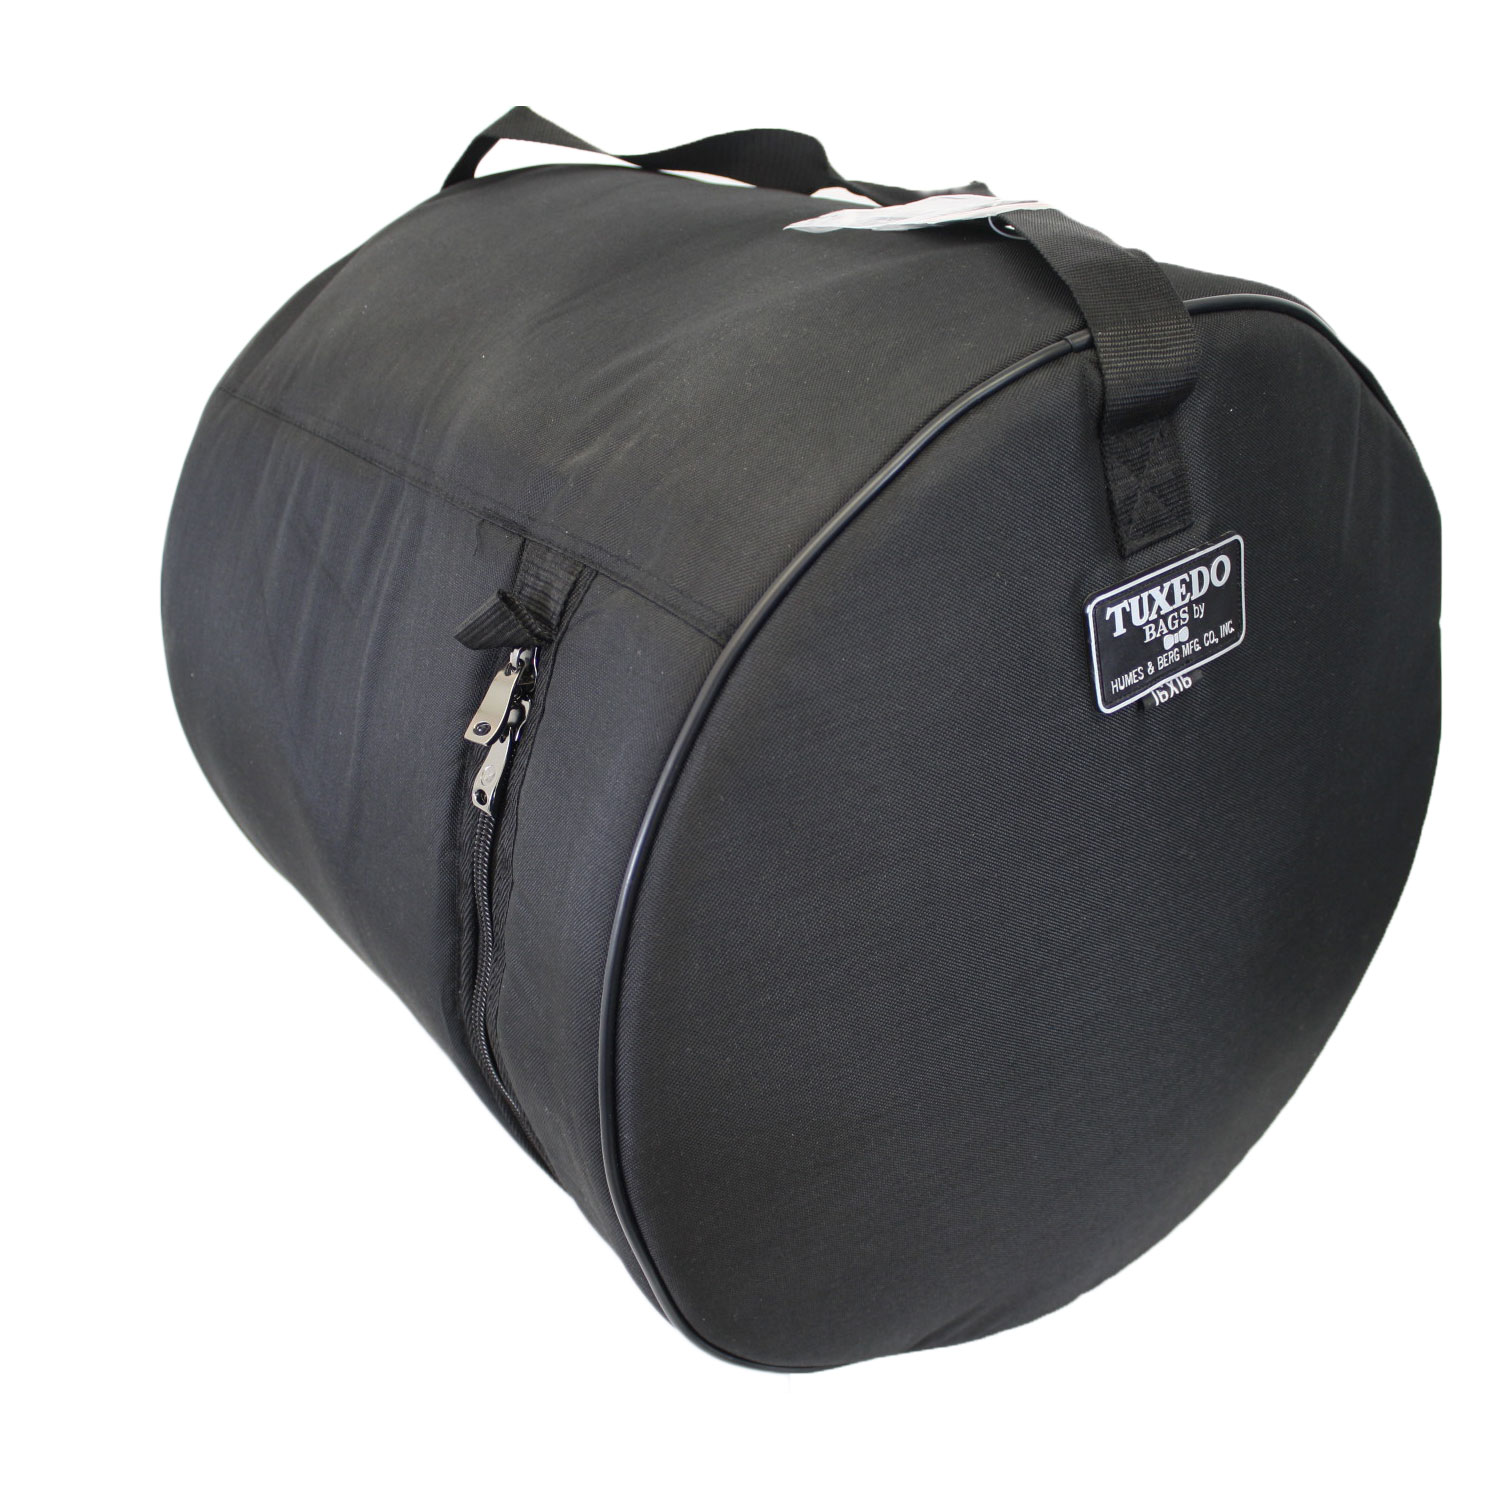 "Humes & Berg 7"" (Deep) X 10"" (Diameter) Tuxedo Tom Bag/Soft Case"